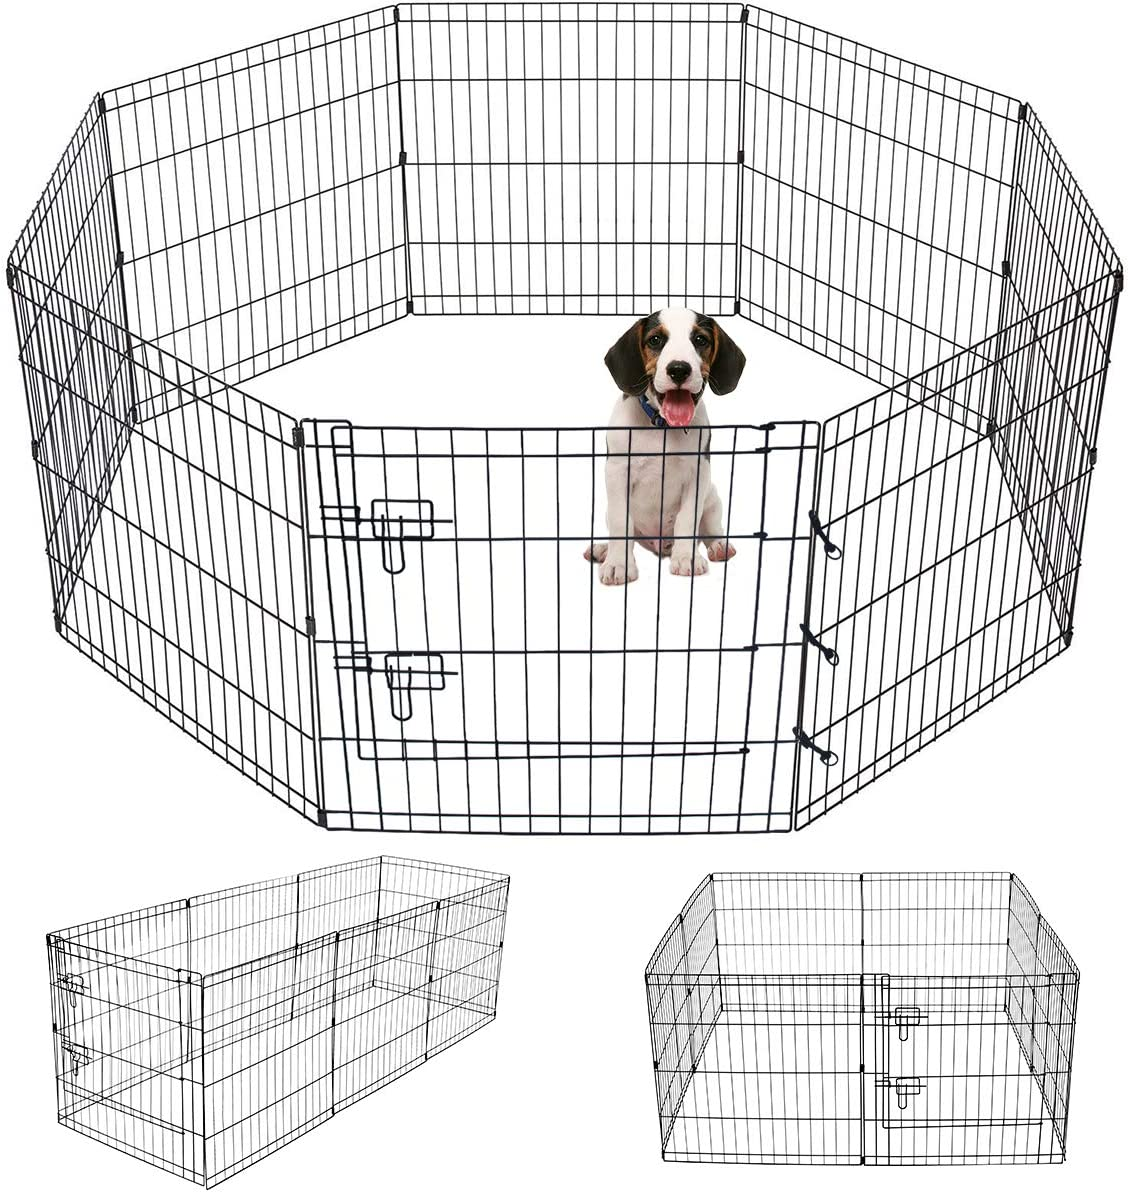 Pet Playpen Puppy Playpen Kennels Dog Fence Exercise Pen Gate Fence Foldable Dog Crate 8 Panels 24 Inch Kennels Pen Playpen Options Ideal for Pet Animals Outdoor Indoor